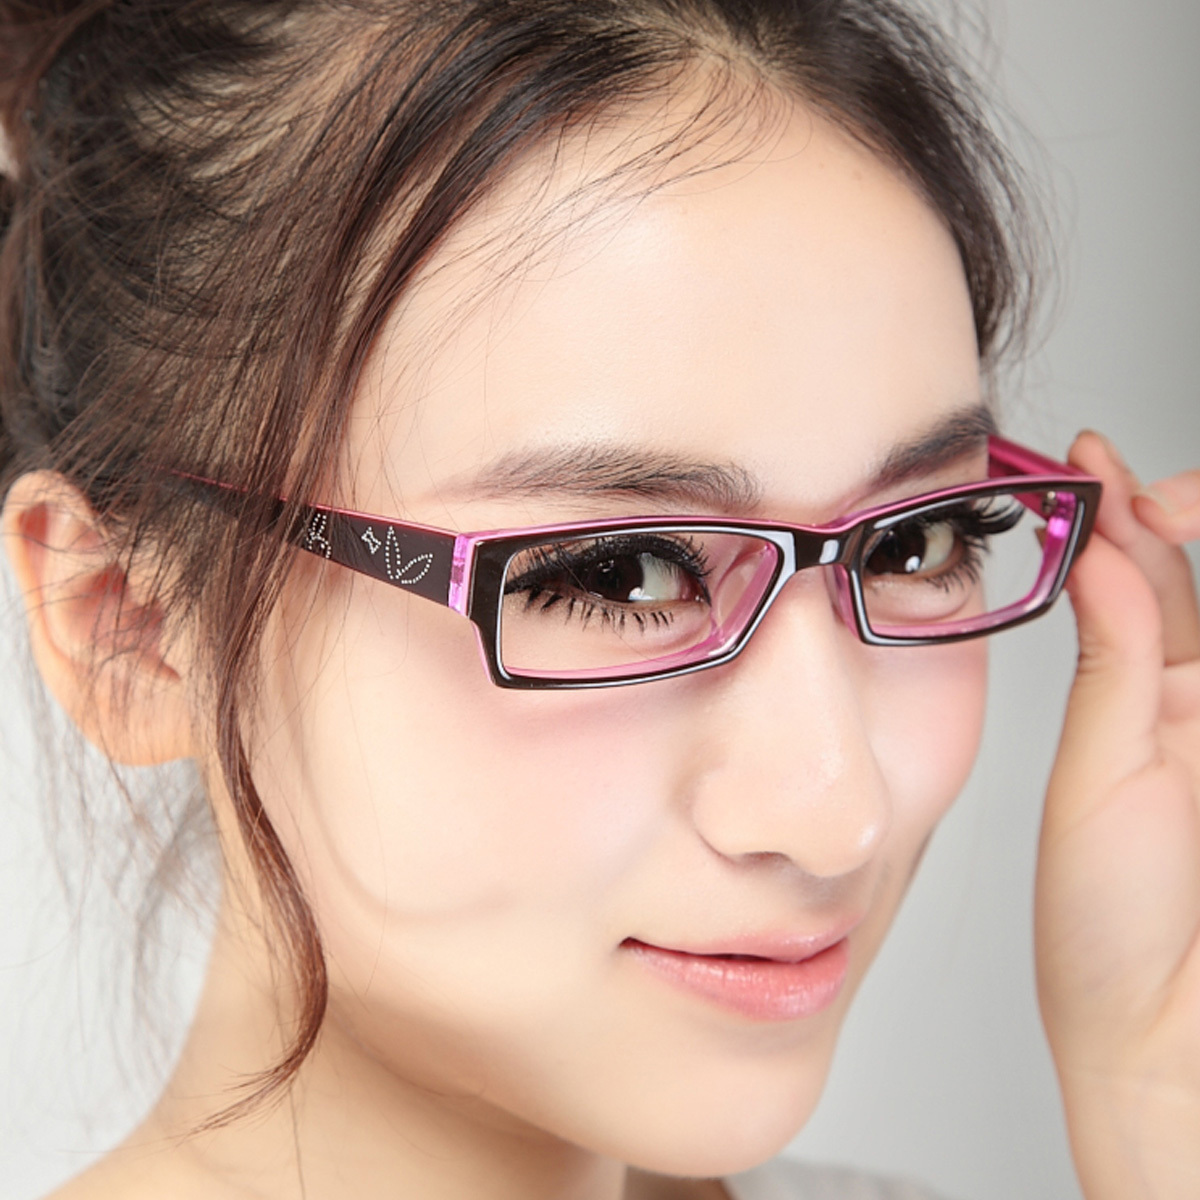 Eyeglass Frames On Models : Full frame sheet glasses myopia Women ultra-light glasses ...